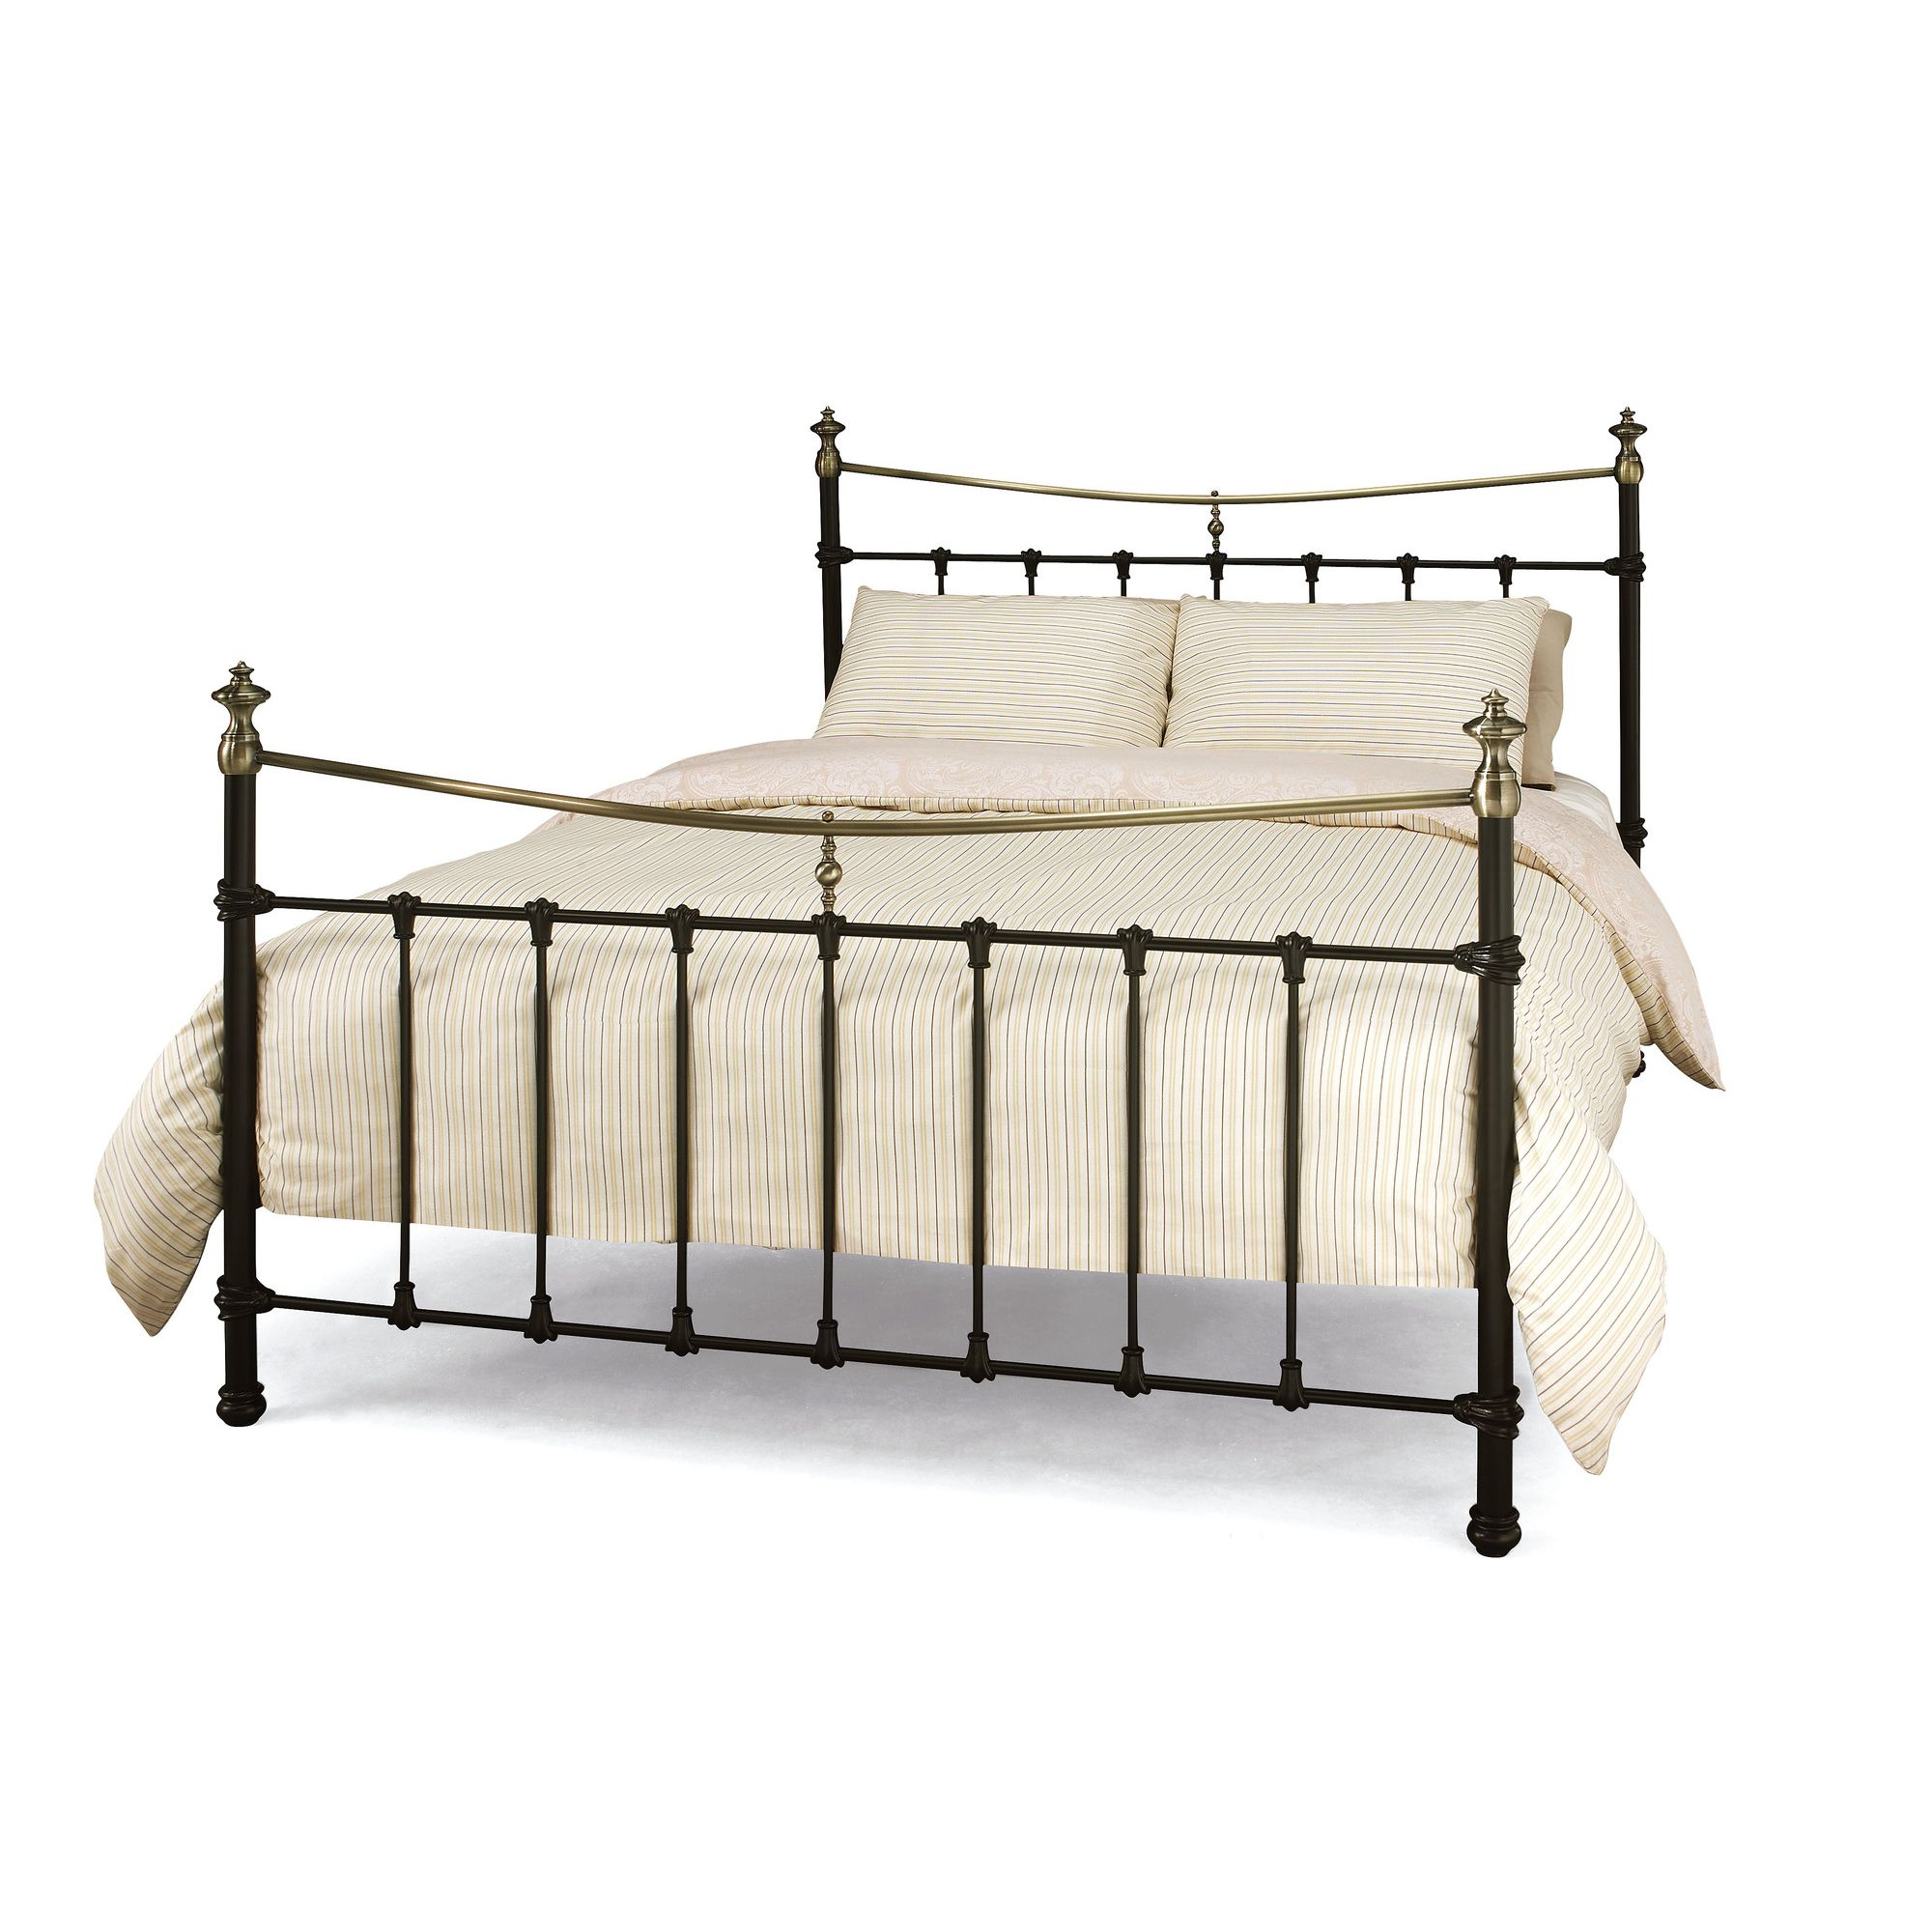 Serene Furnishings Edwardian Bed Frame - Double at Tesco Direct